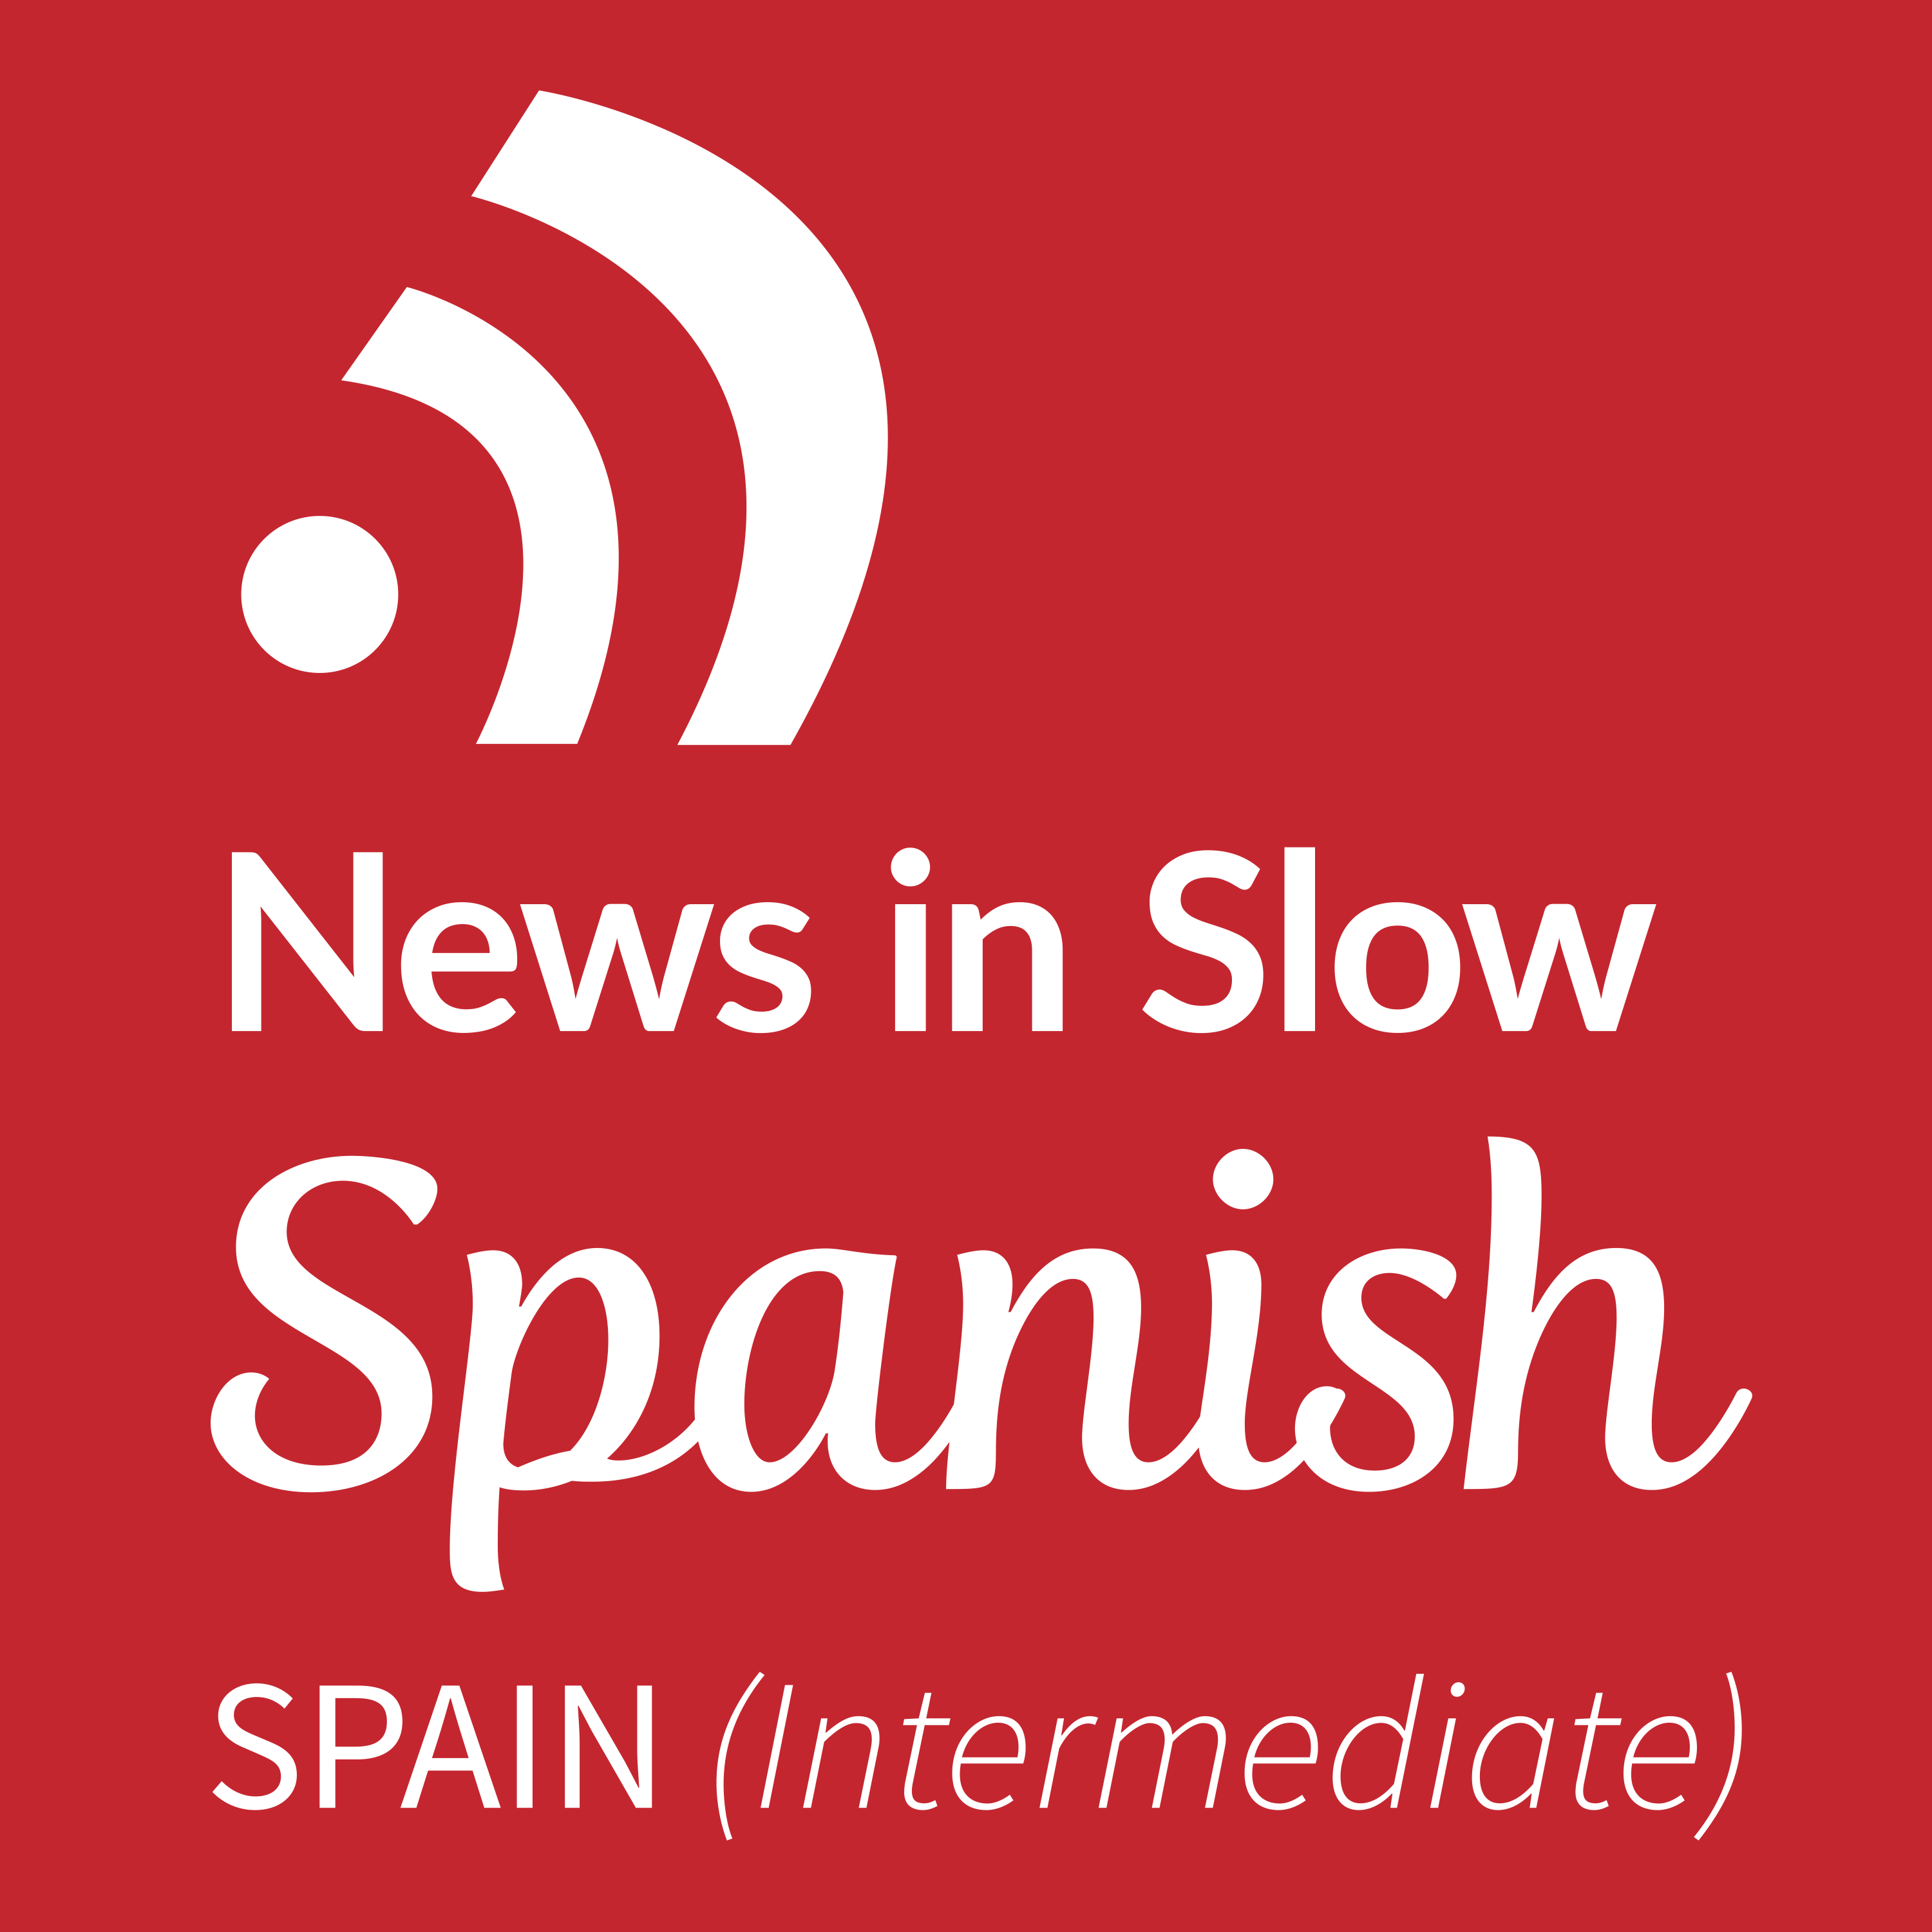 News in Slow Spanish - #360 - Language learning in the context of current events